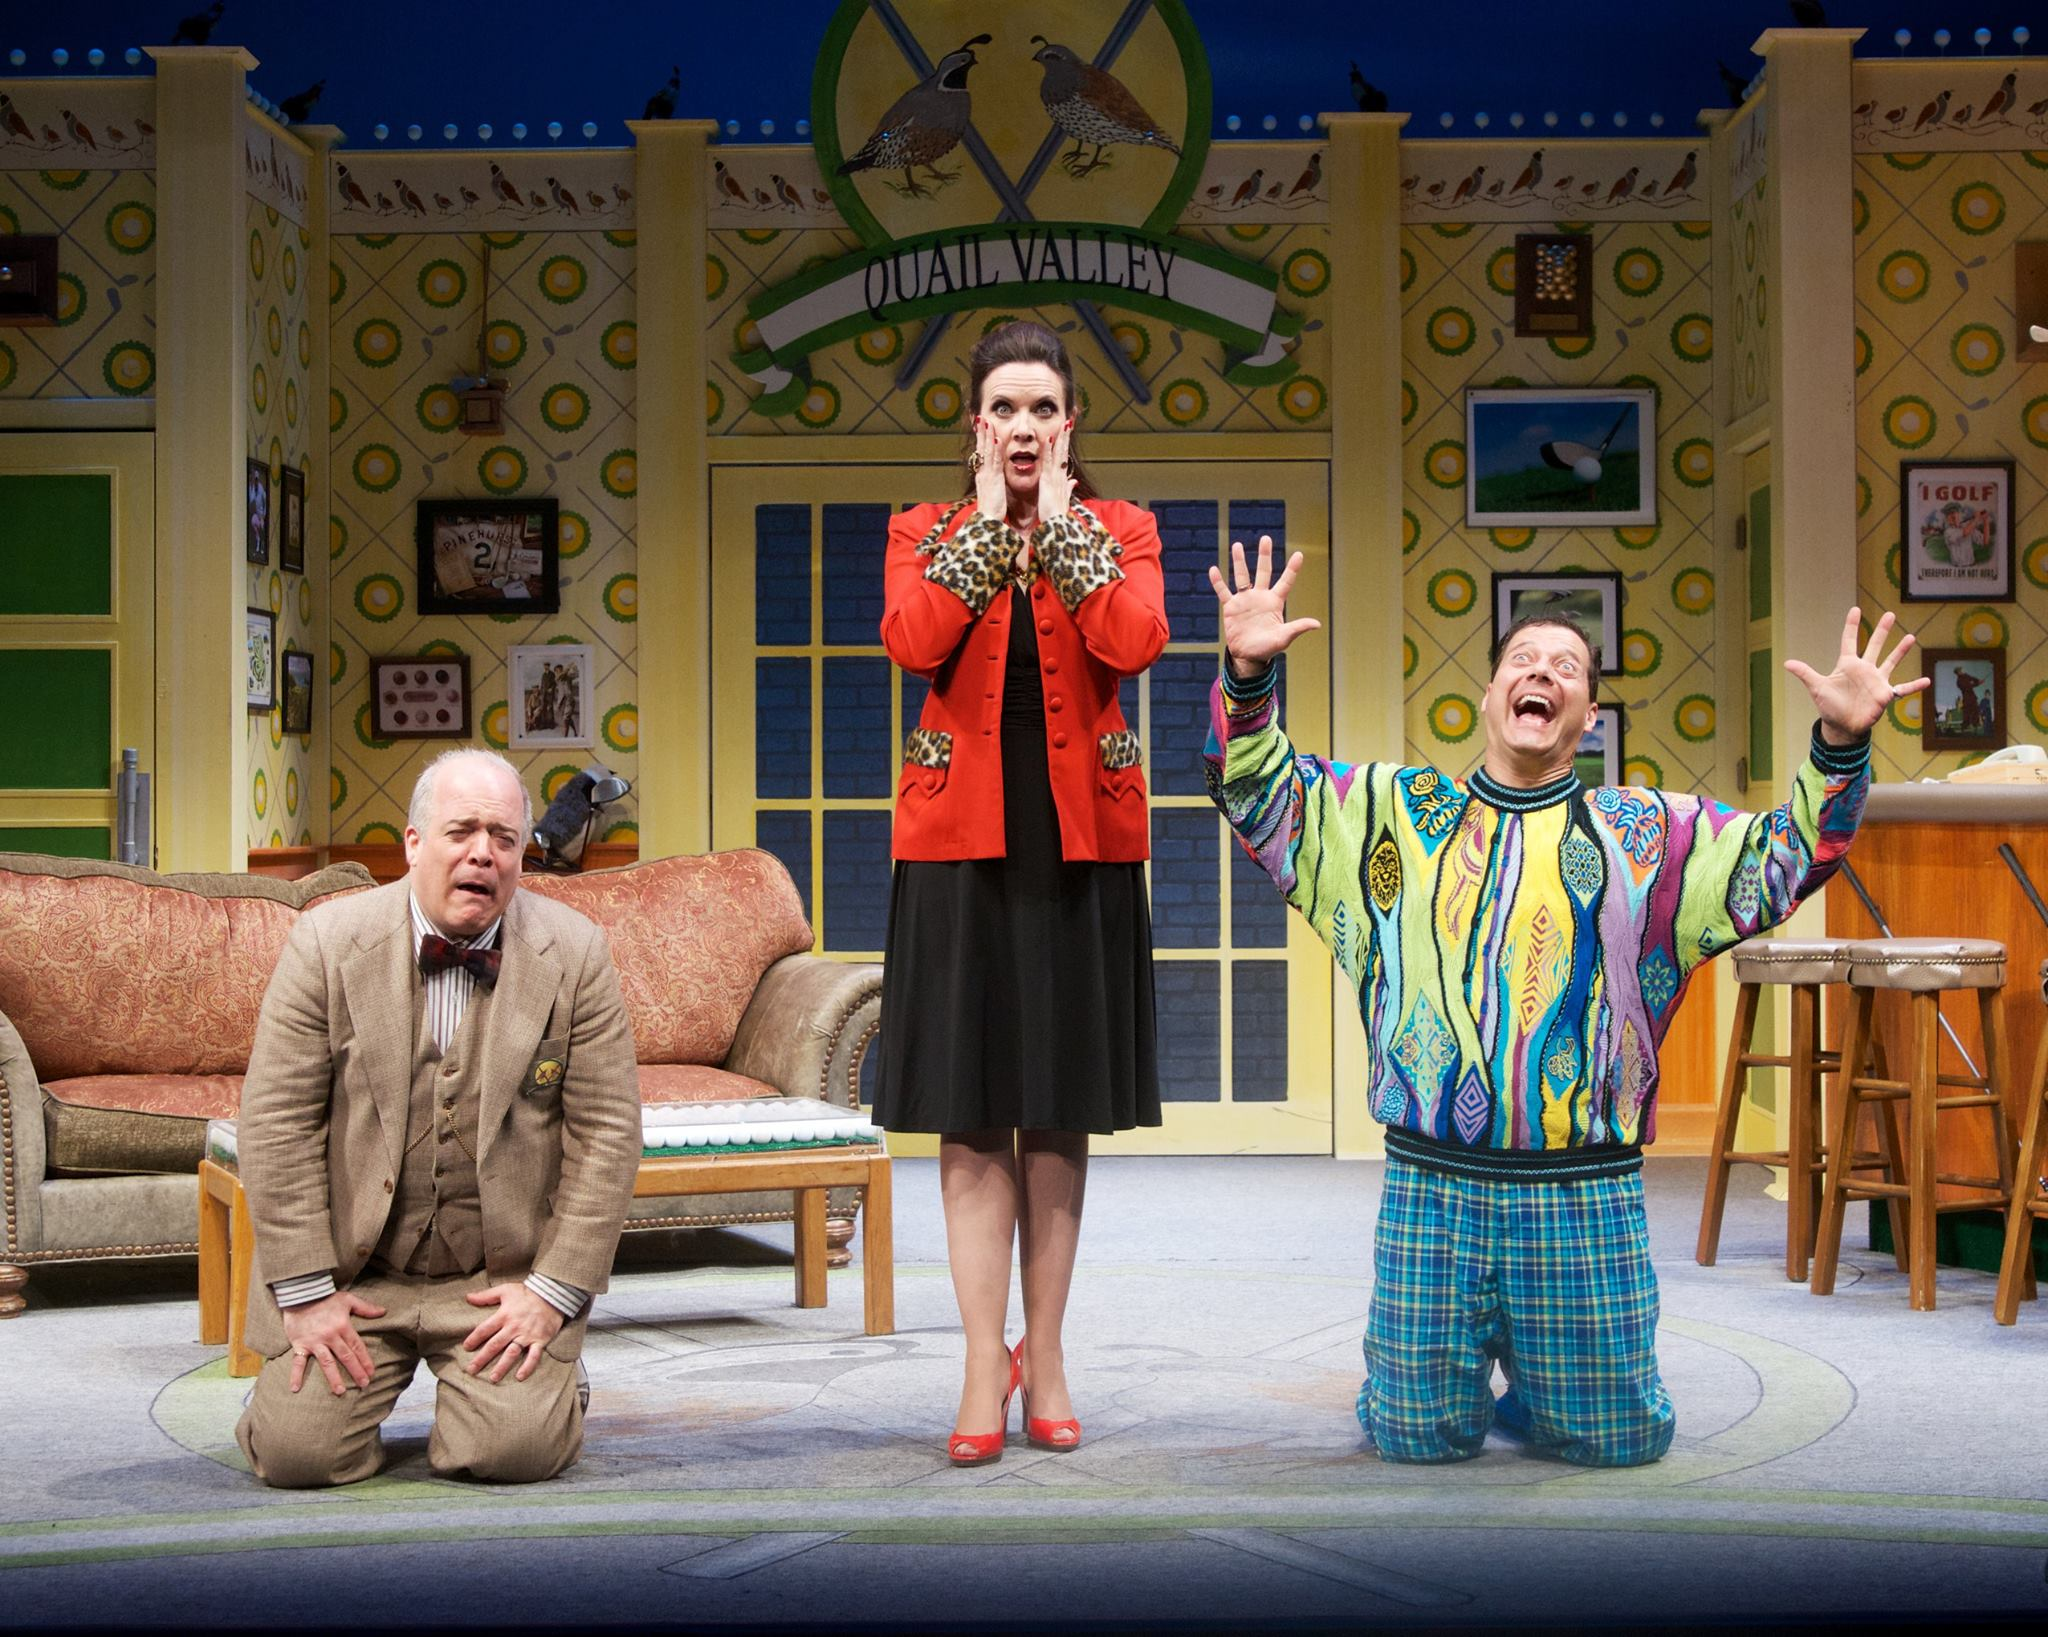 """Maren Maclean is flanked by Ted Barton (left) and Gene Ganssle (right) in """"The Fox on the Fairway"""" at Actors Theatre, 2013. (Photo by John Groseclose)"""